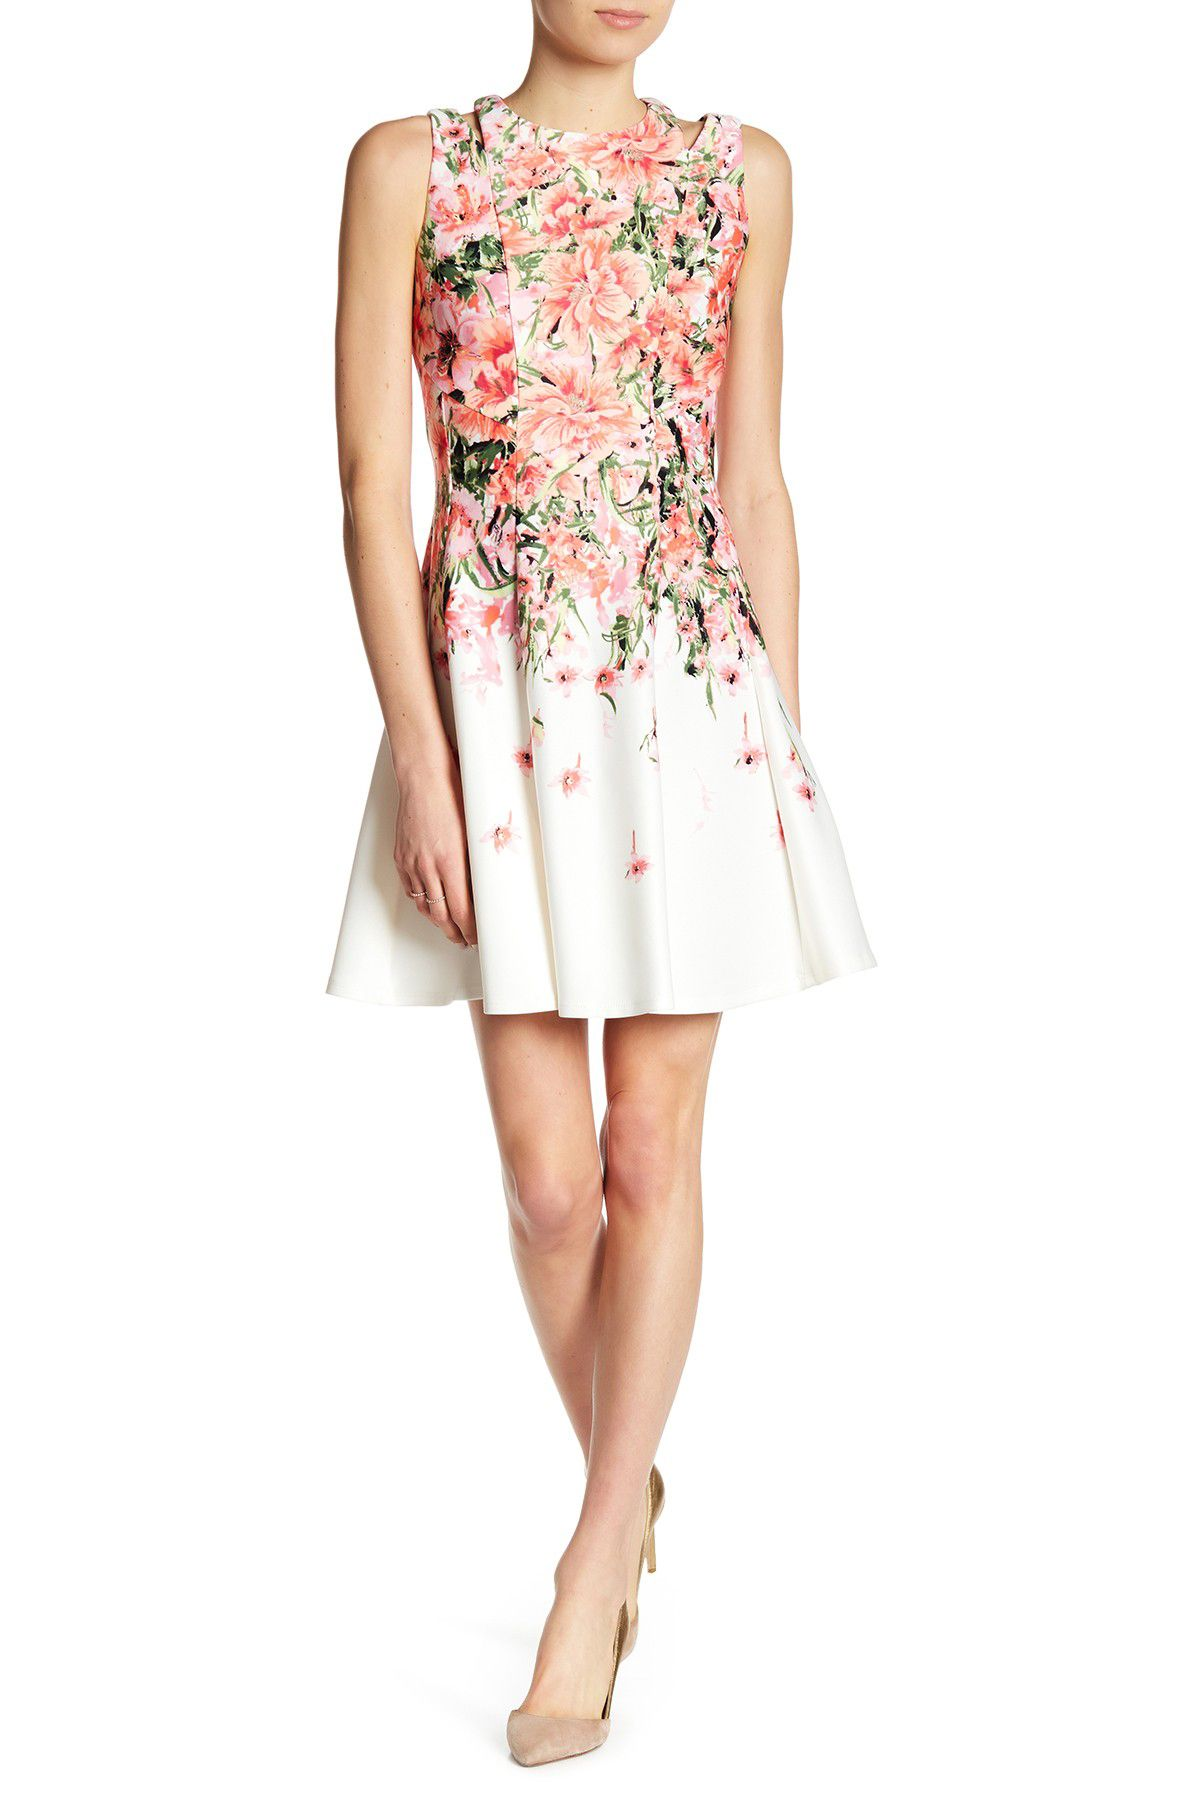 15 Gorgeous Easter Dresses for Under 100